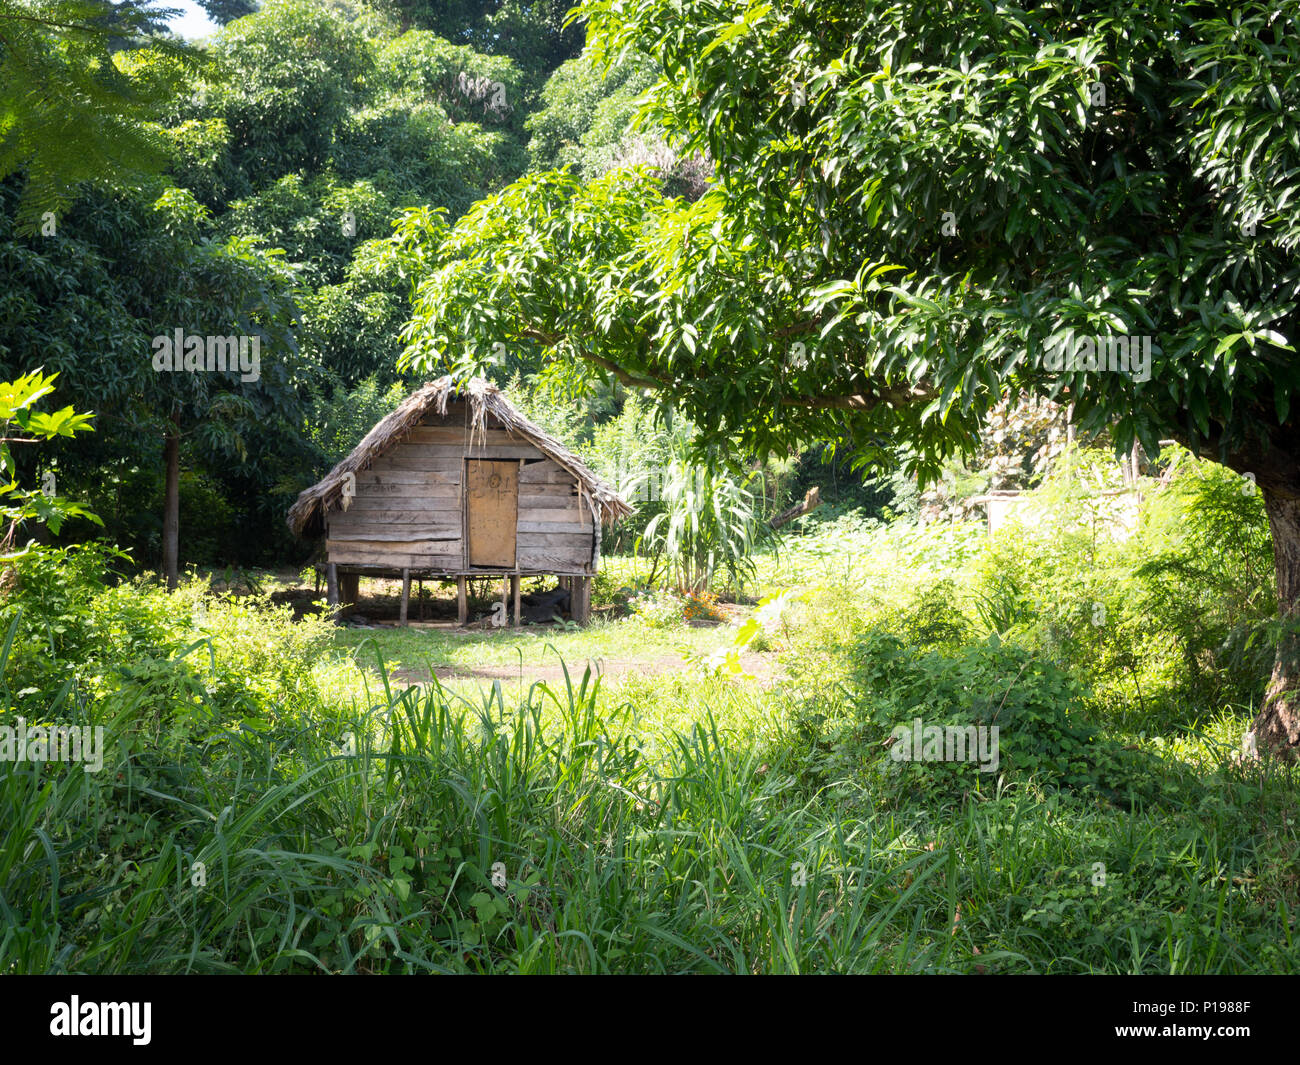 Wood Hut Home Local Village On Tanna Island, Vanuatu - Stock Image